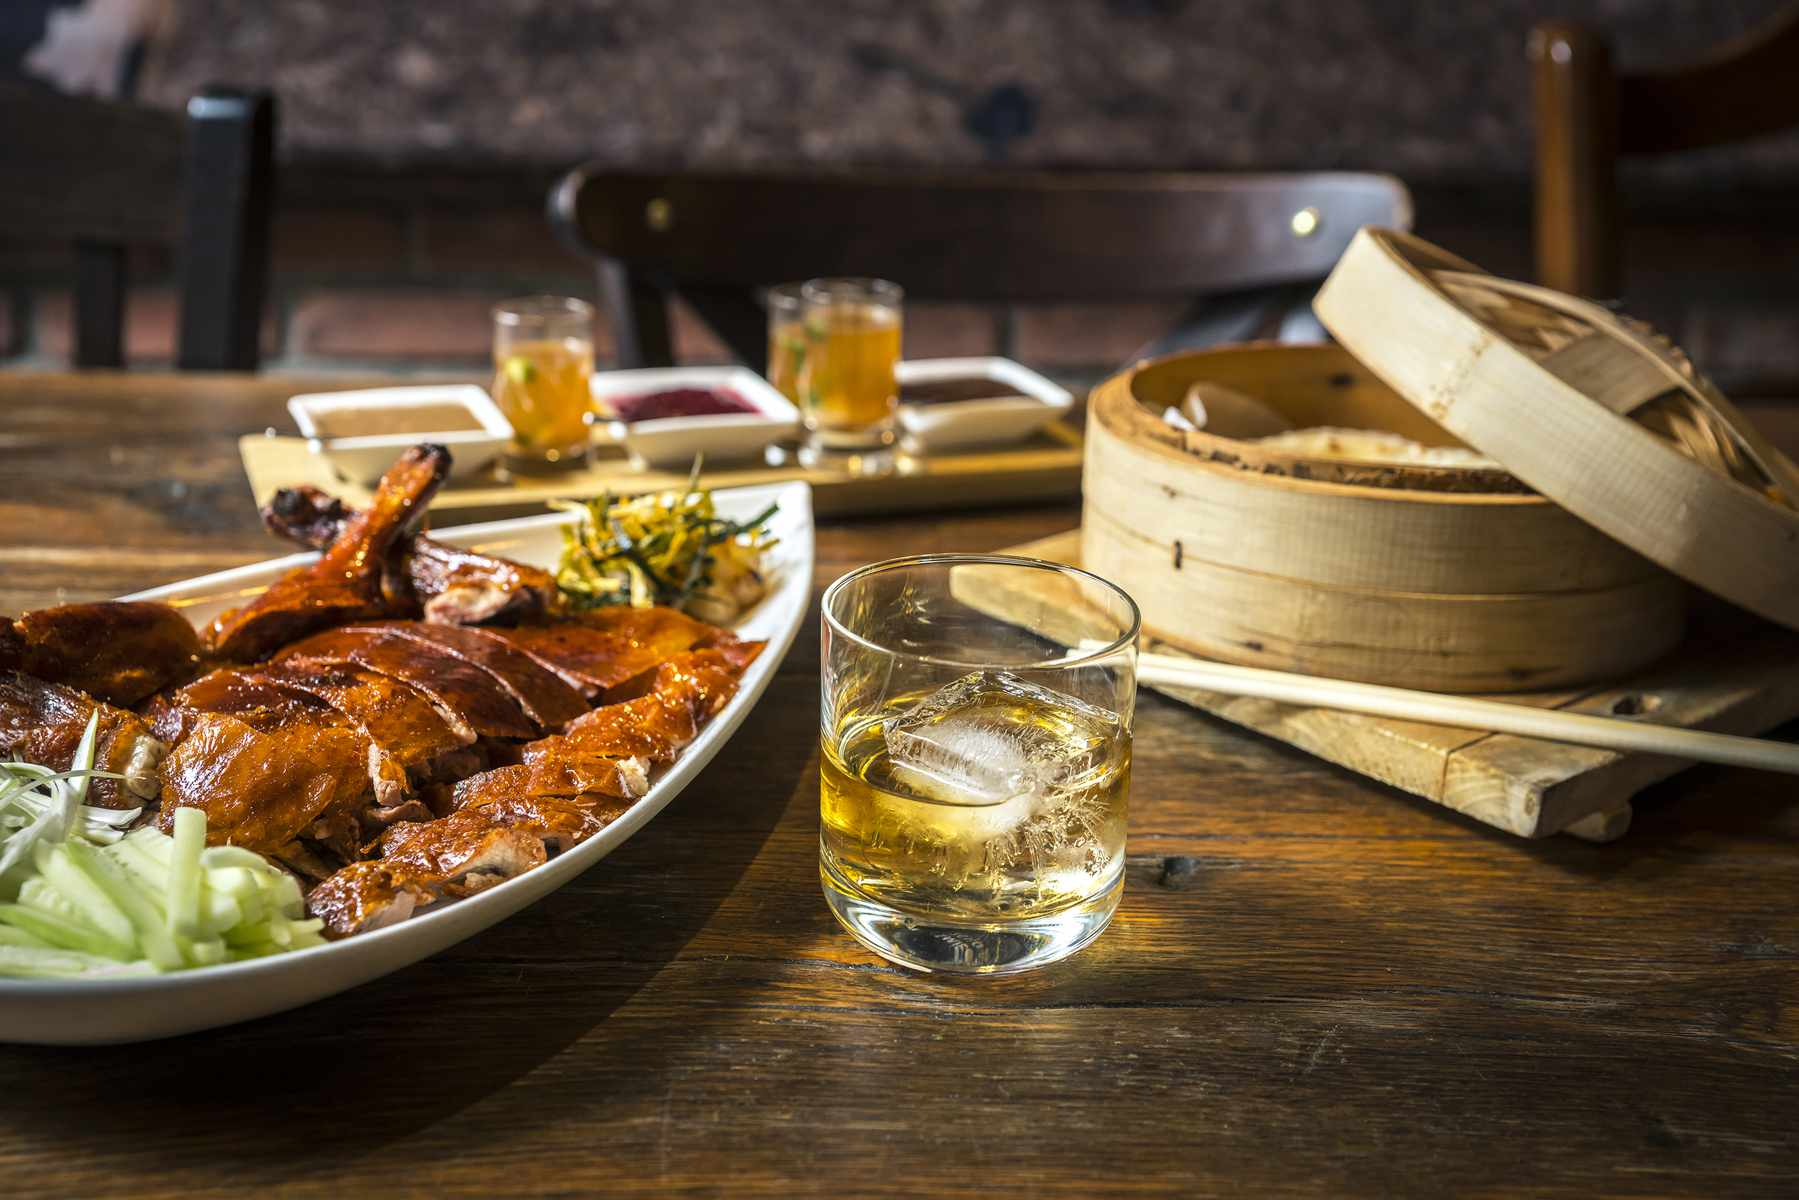 roasted duck on a table with a partially open steam basket and a glass with one ice cube at decoy